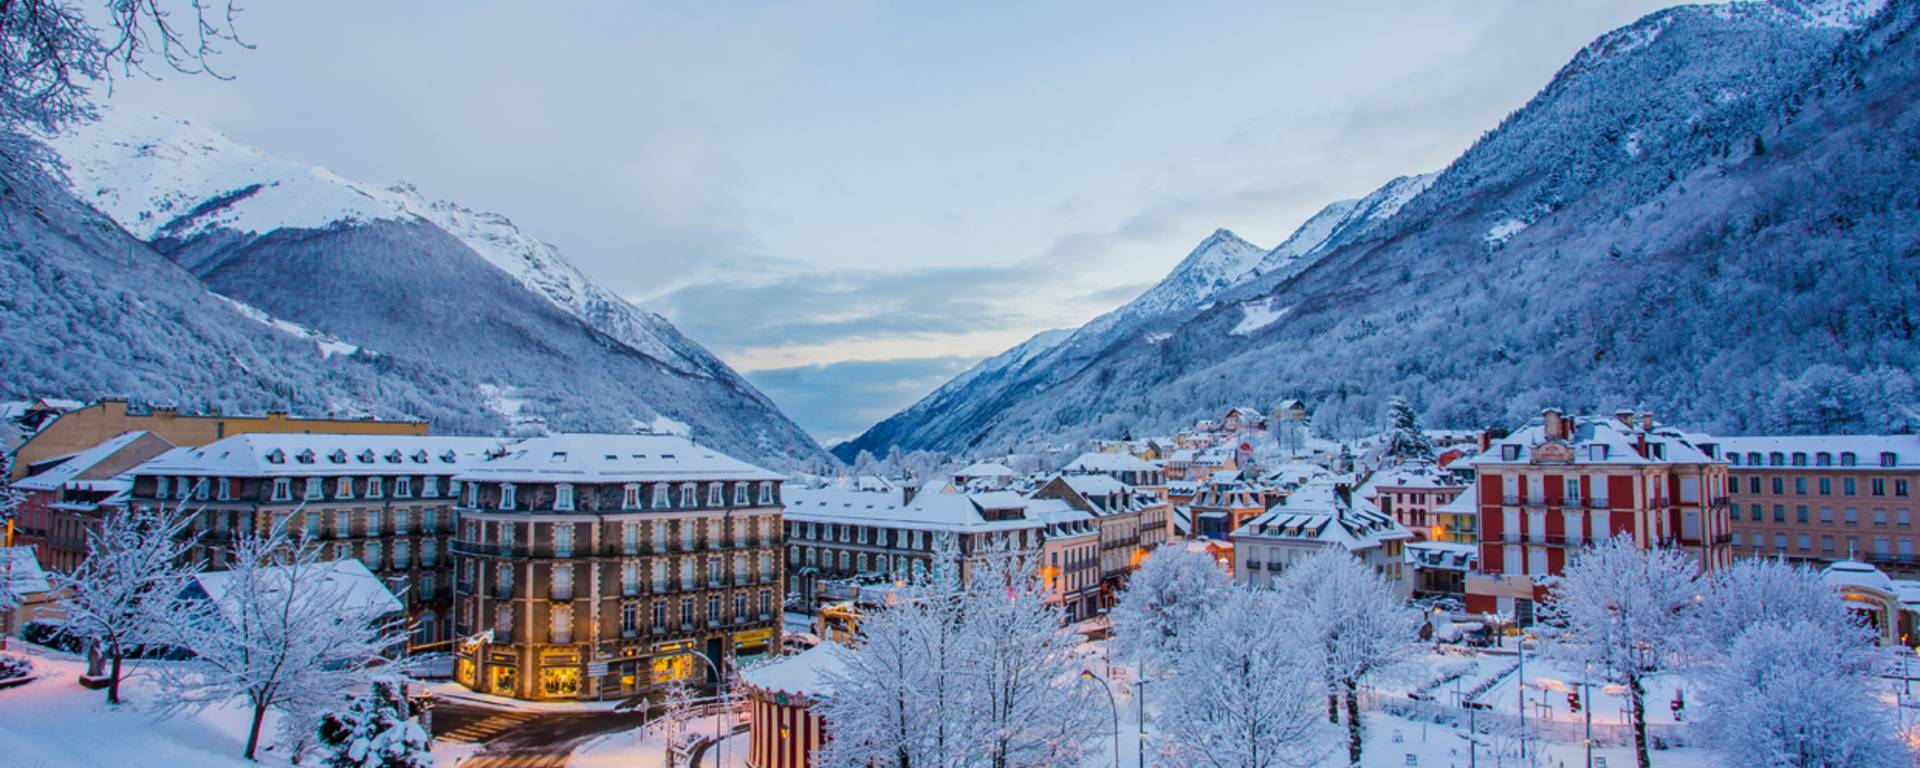 Cauterets Village  | Gavarnie Valleys